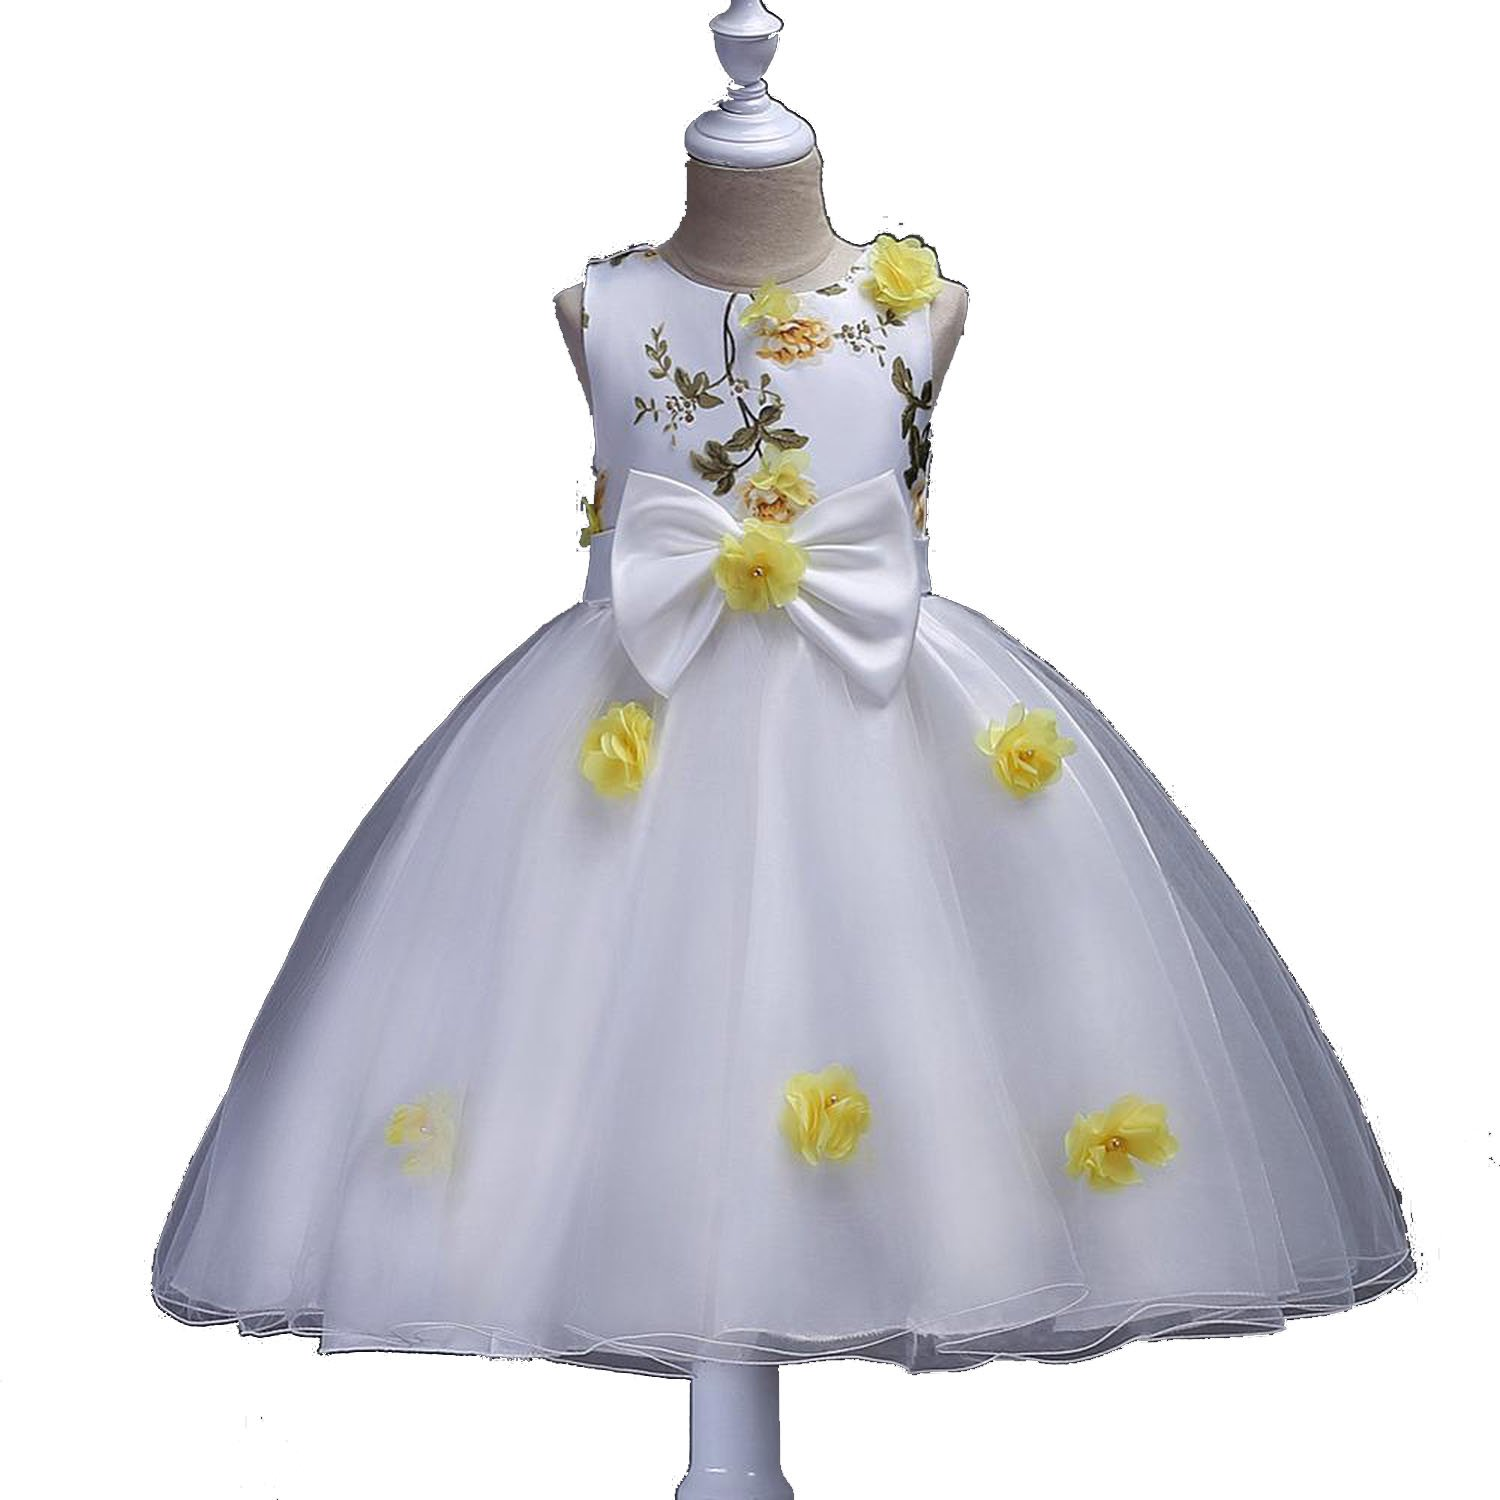 Toping Fine girl dress Flower Girl Dresses Butterfly Flowers Girls Dresses for Wedding Birthday Party,Picture Yellow,Child-5